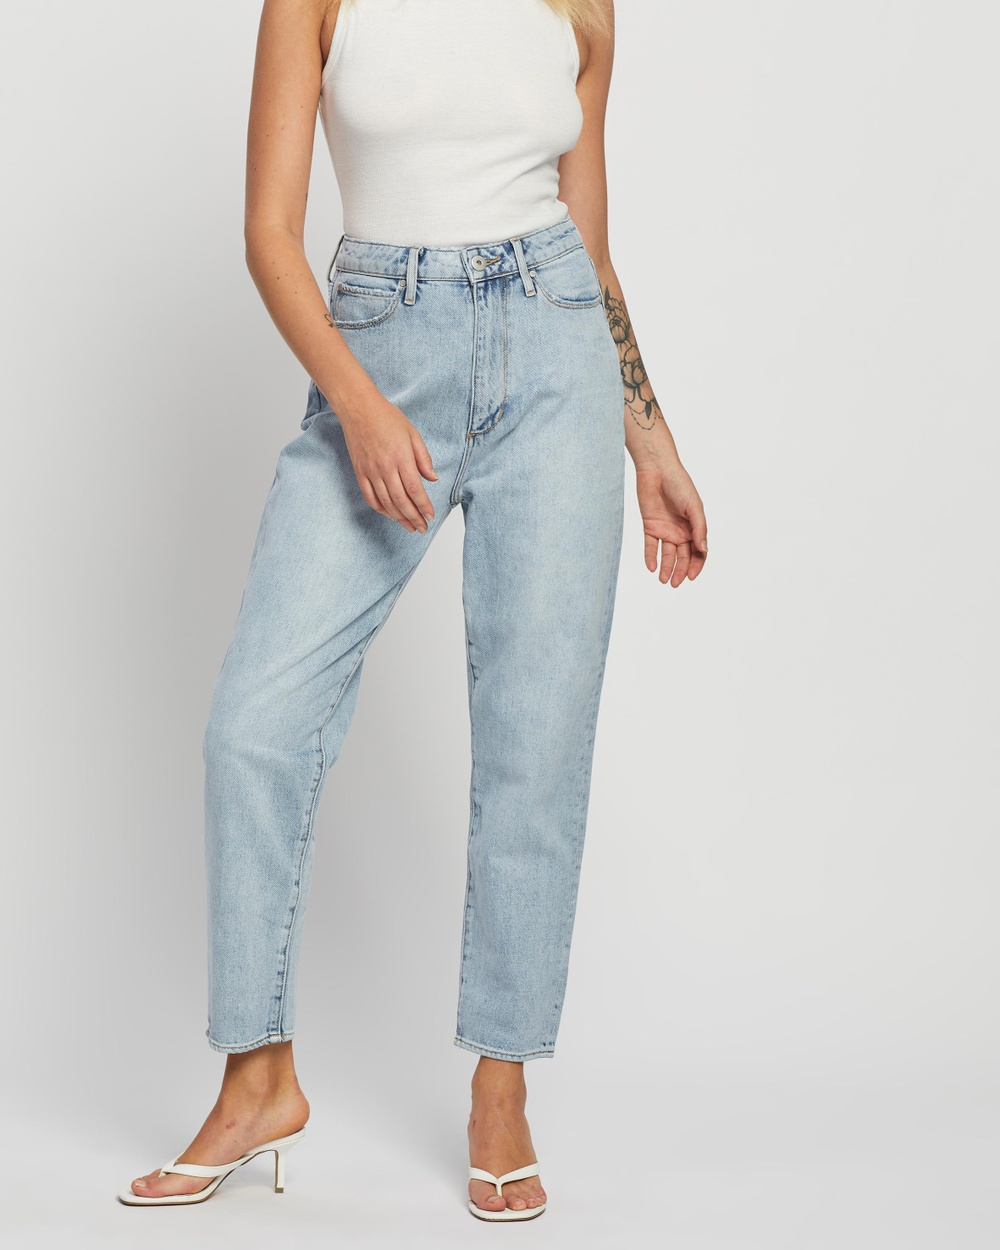 Articles of Society Charlotte Mom Jeans High-Waisted Vintage Light Blue Australia